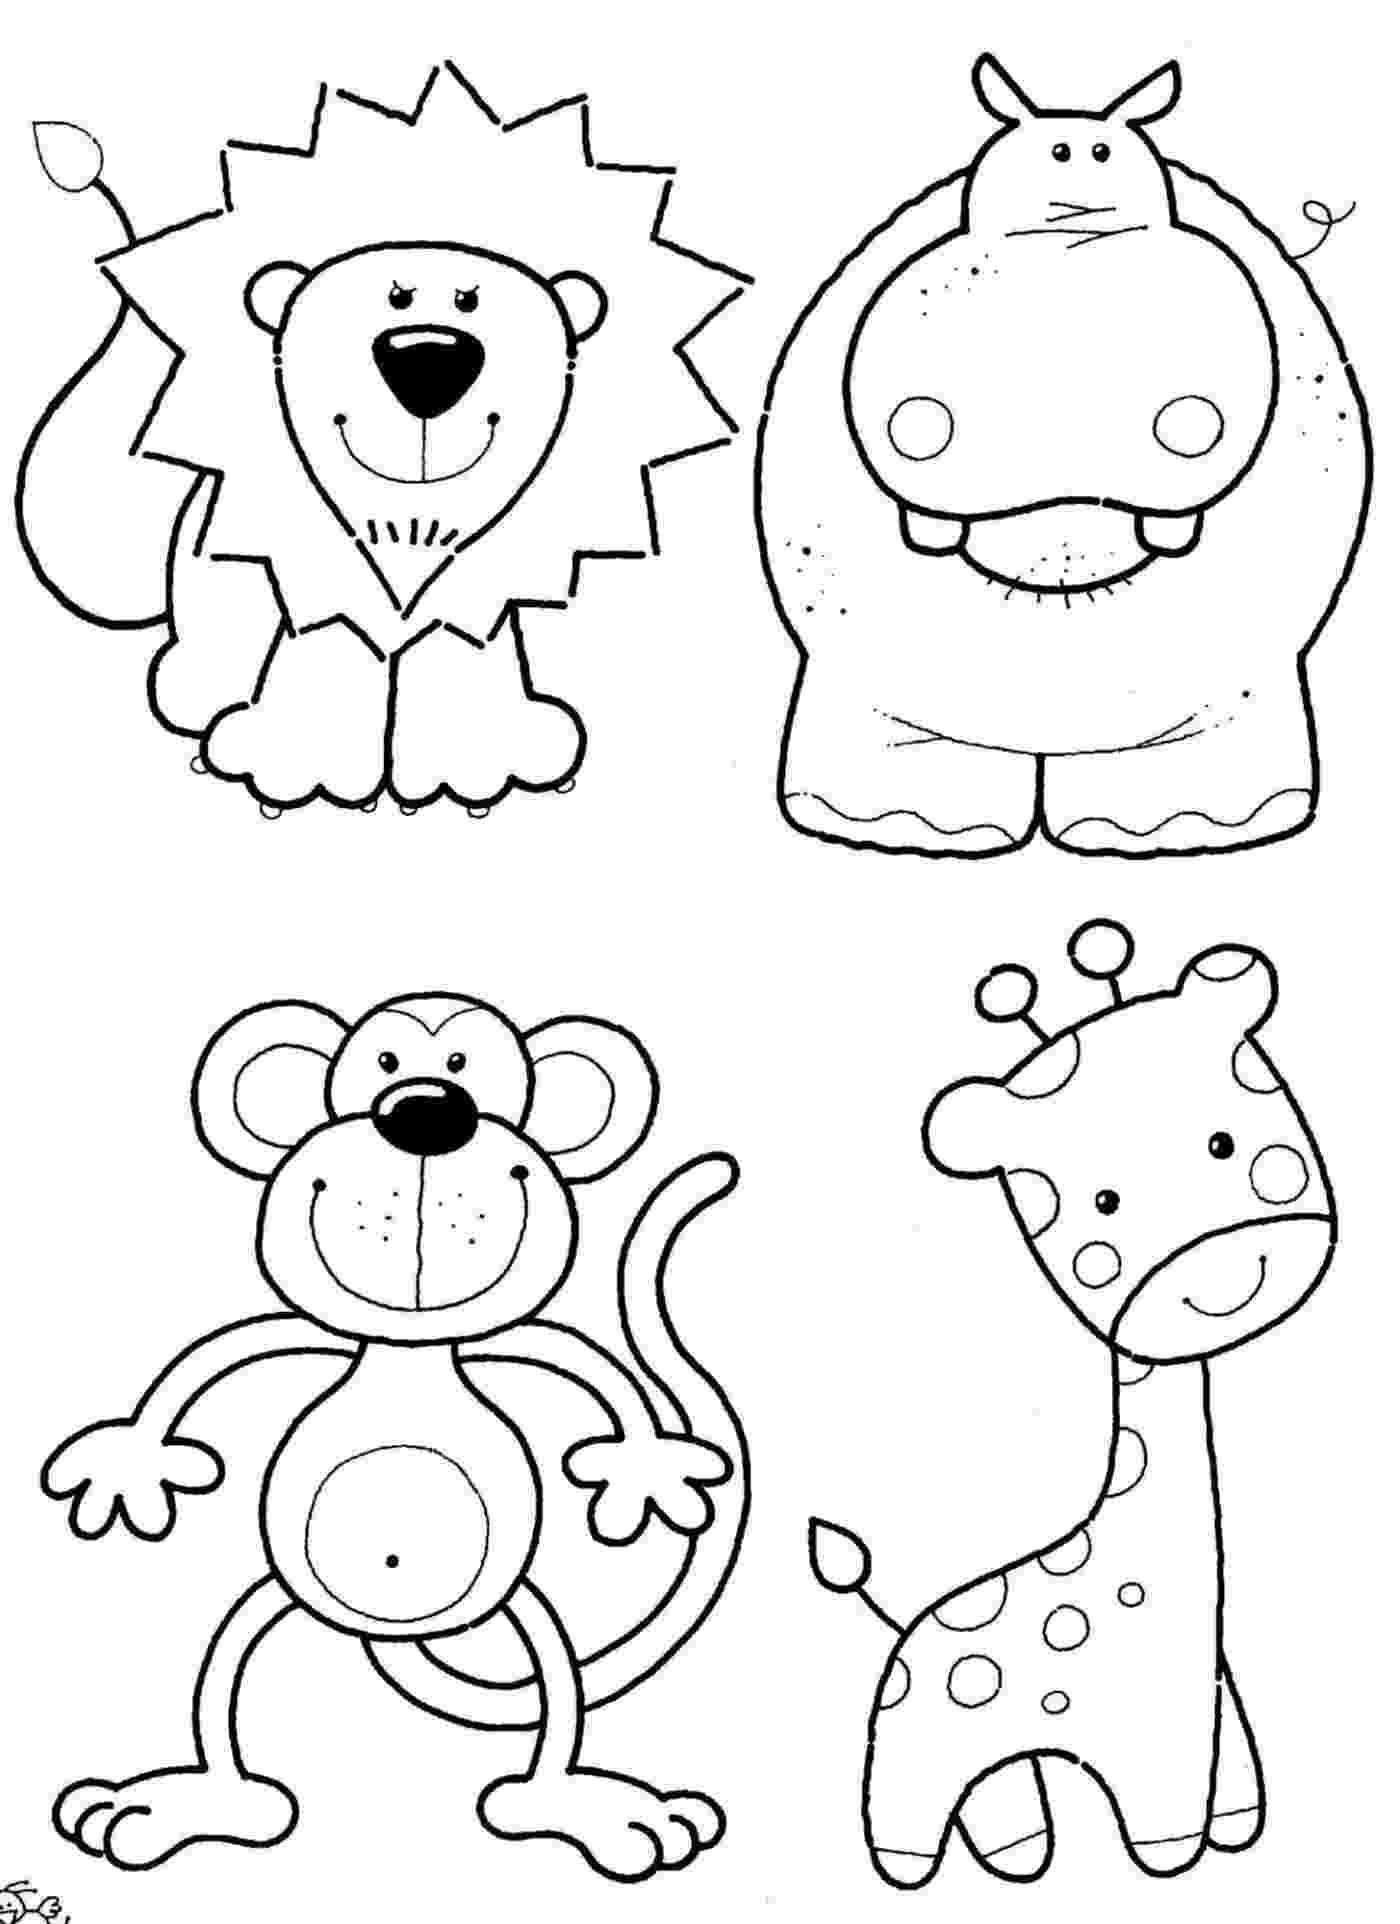 animal pictures coloring pages adult coloring pages animals best coloring pages for kids coloring animal pages pictures